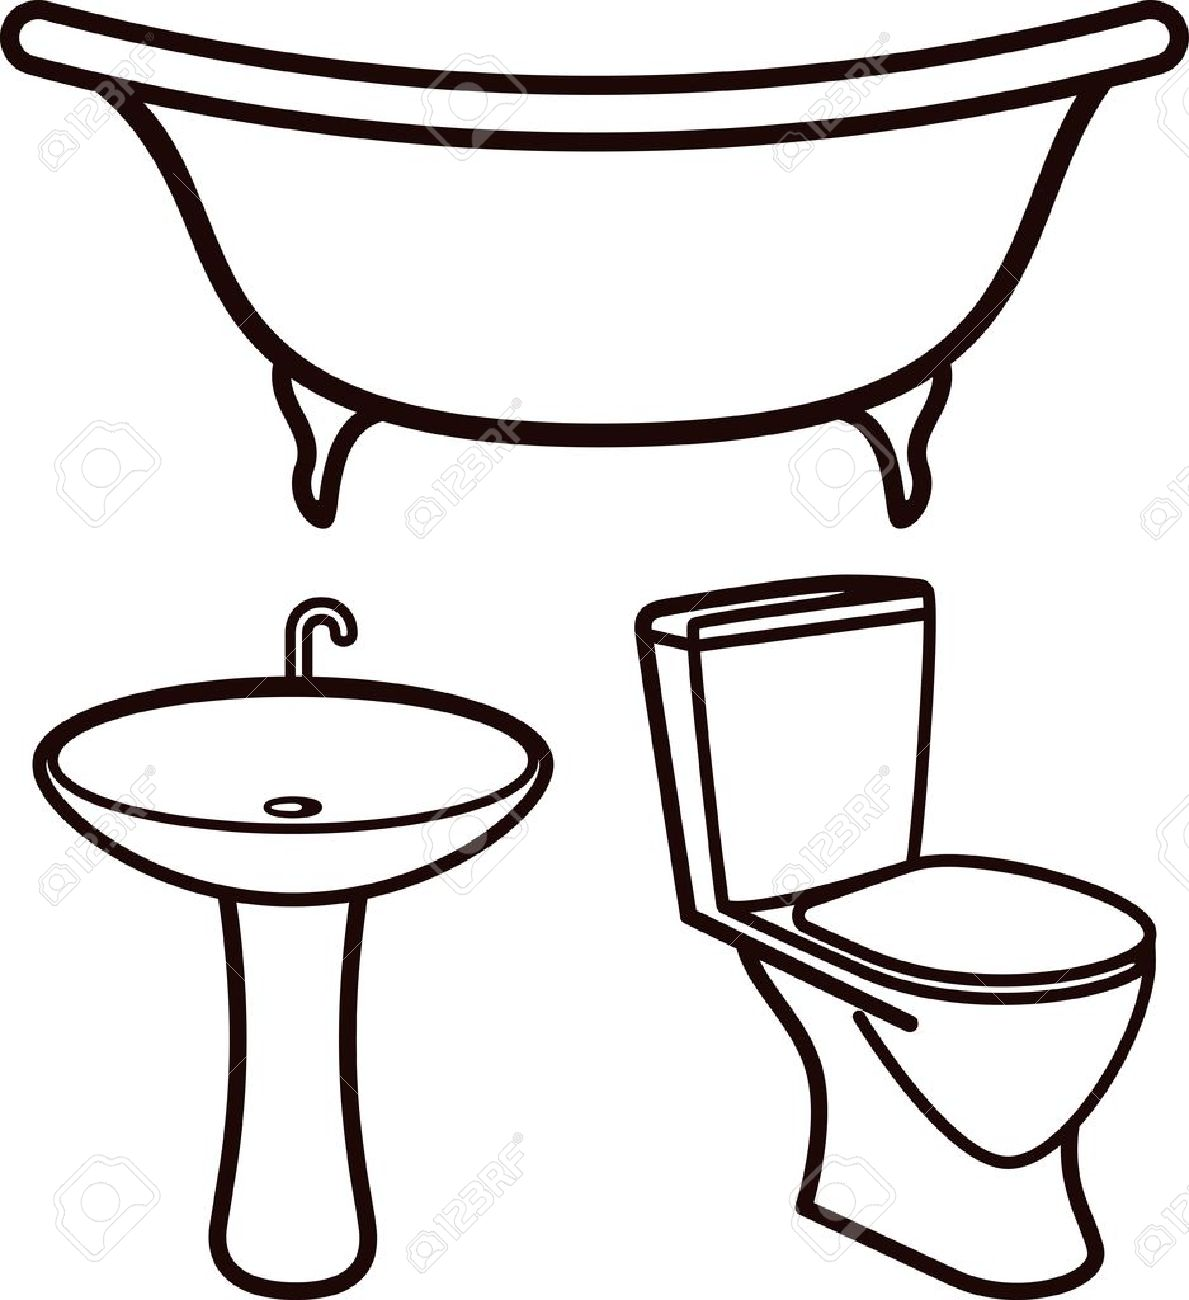 Bathroom sink drawing - Vector Set Of Bathroom Elements